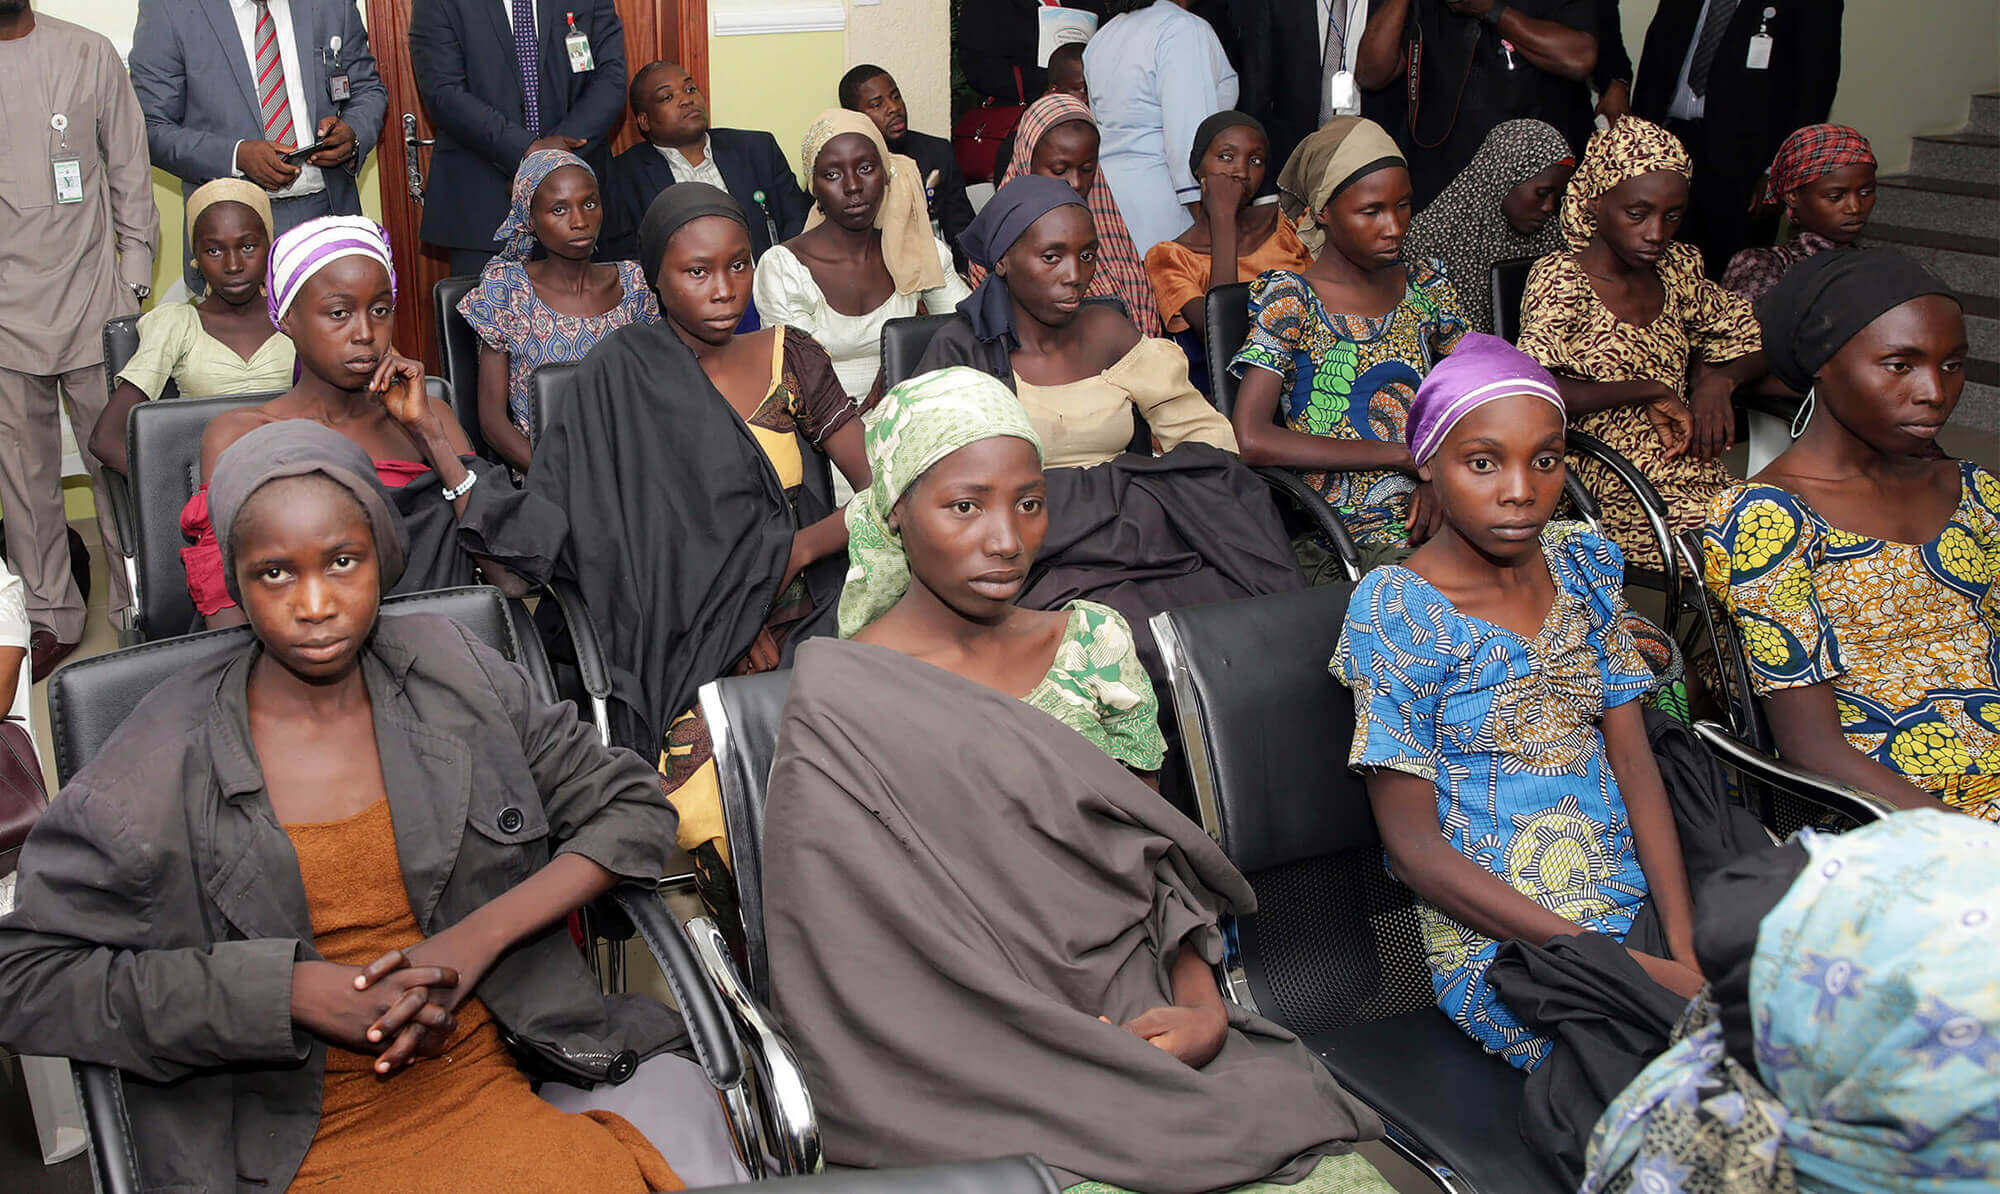 Image of some of the released Chibok girls